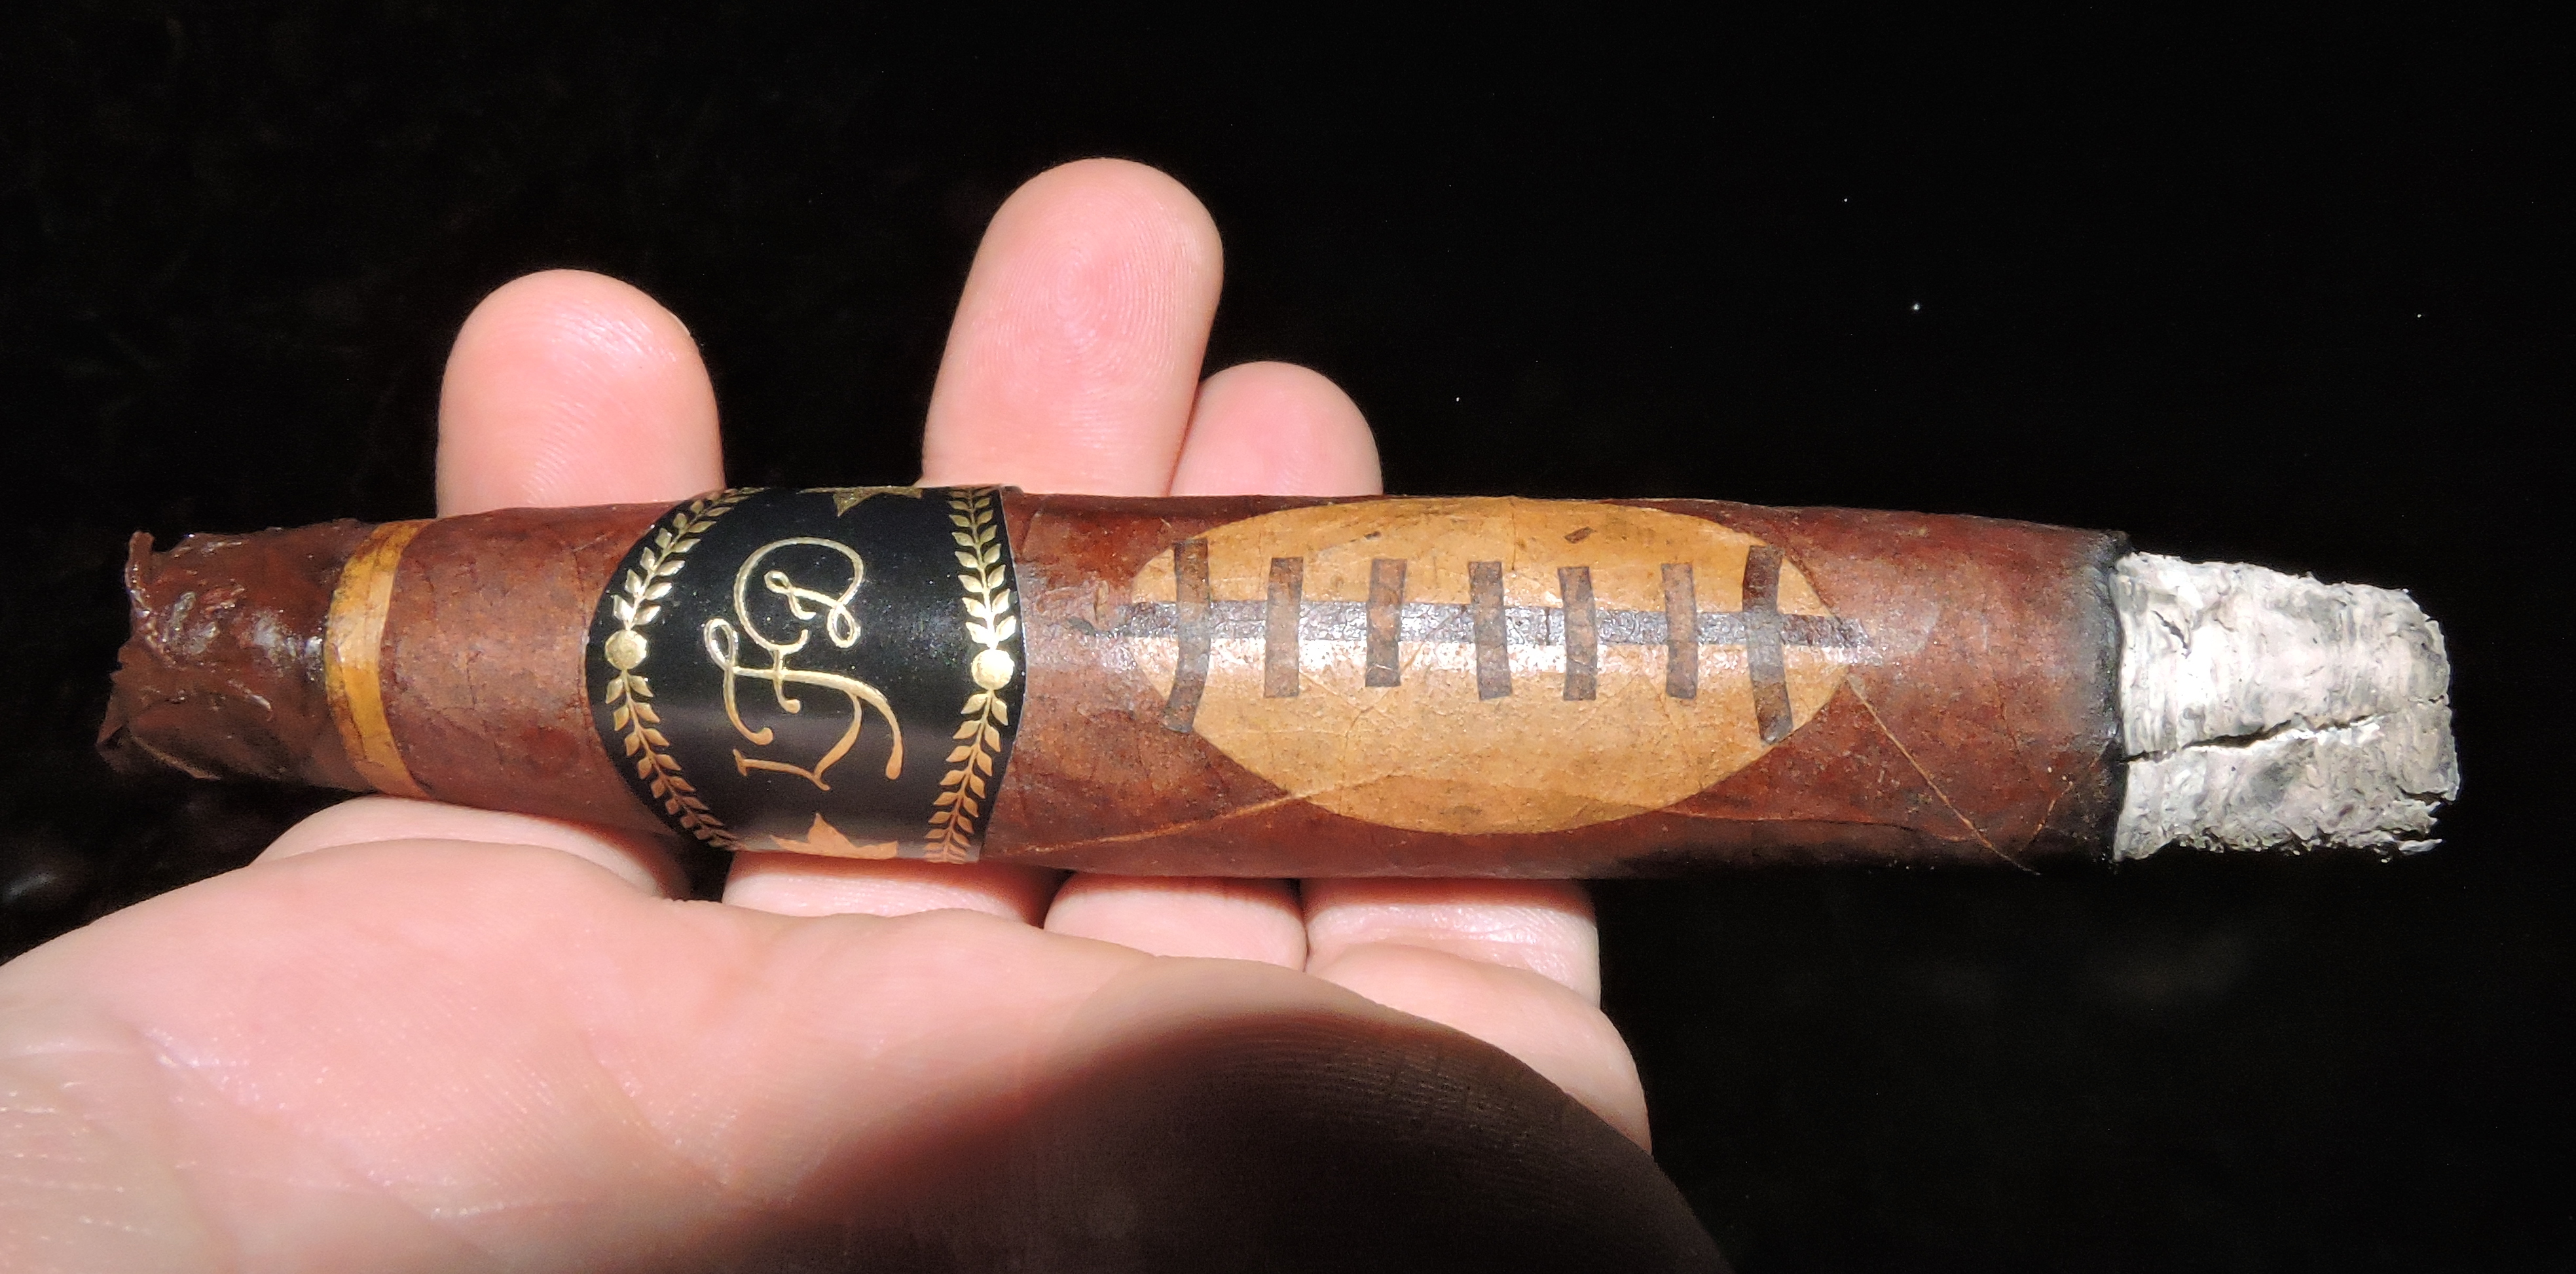 La_Flor_Dominicana_Special_Football_Edition_2016-Burn